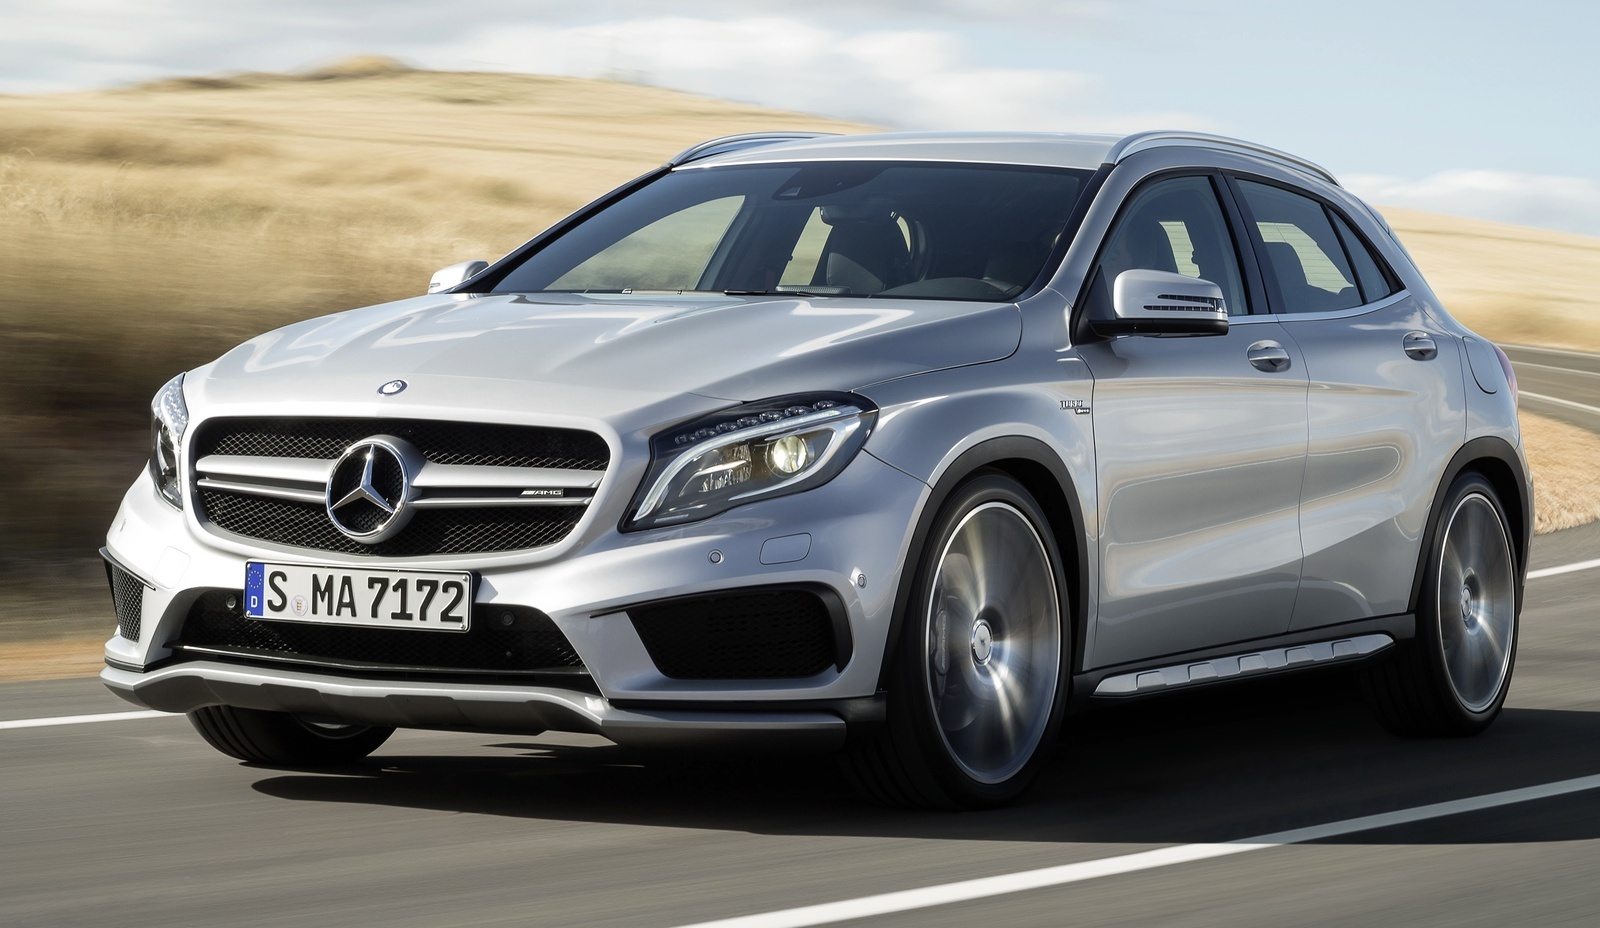 2015 2016 Mercedes Benz Gla Class For Sale In Your Area